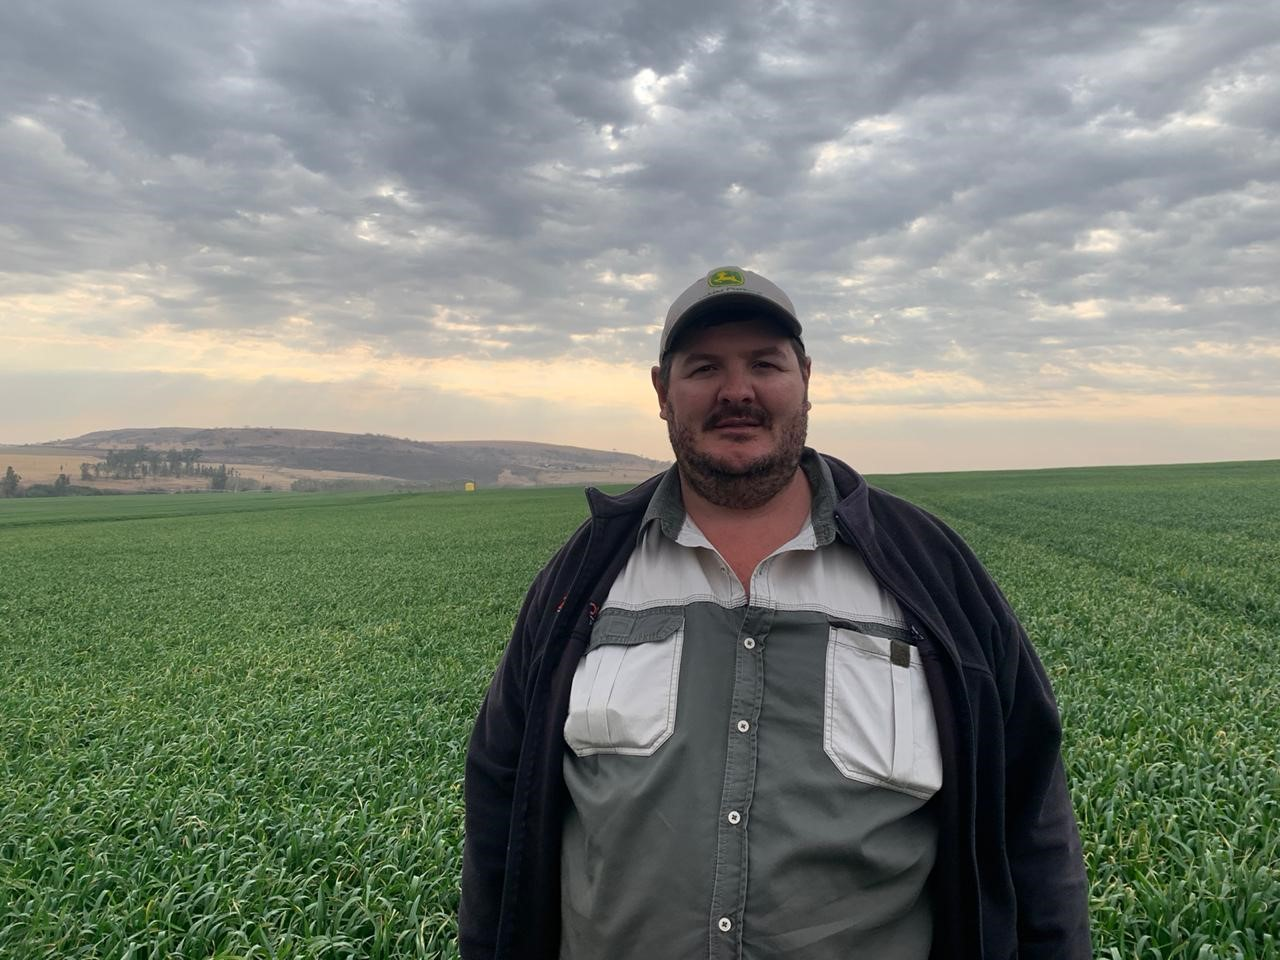 With a competition record of 5.12 ton per hectare, Clinton Frey was crowned the winner in the Grow for Gold category for soybeans in KwaZulu-Natal. Photo: Supplied